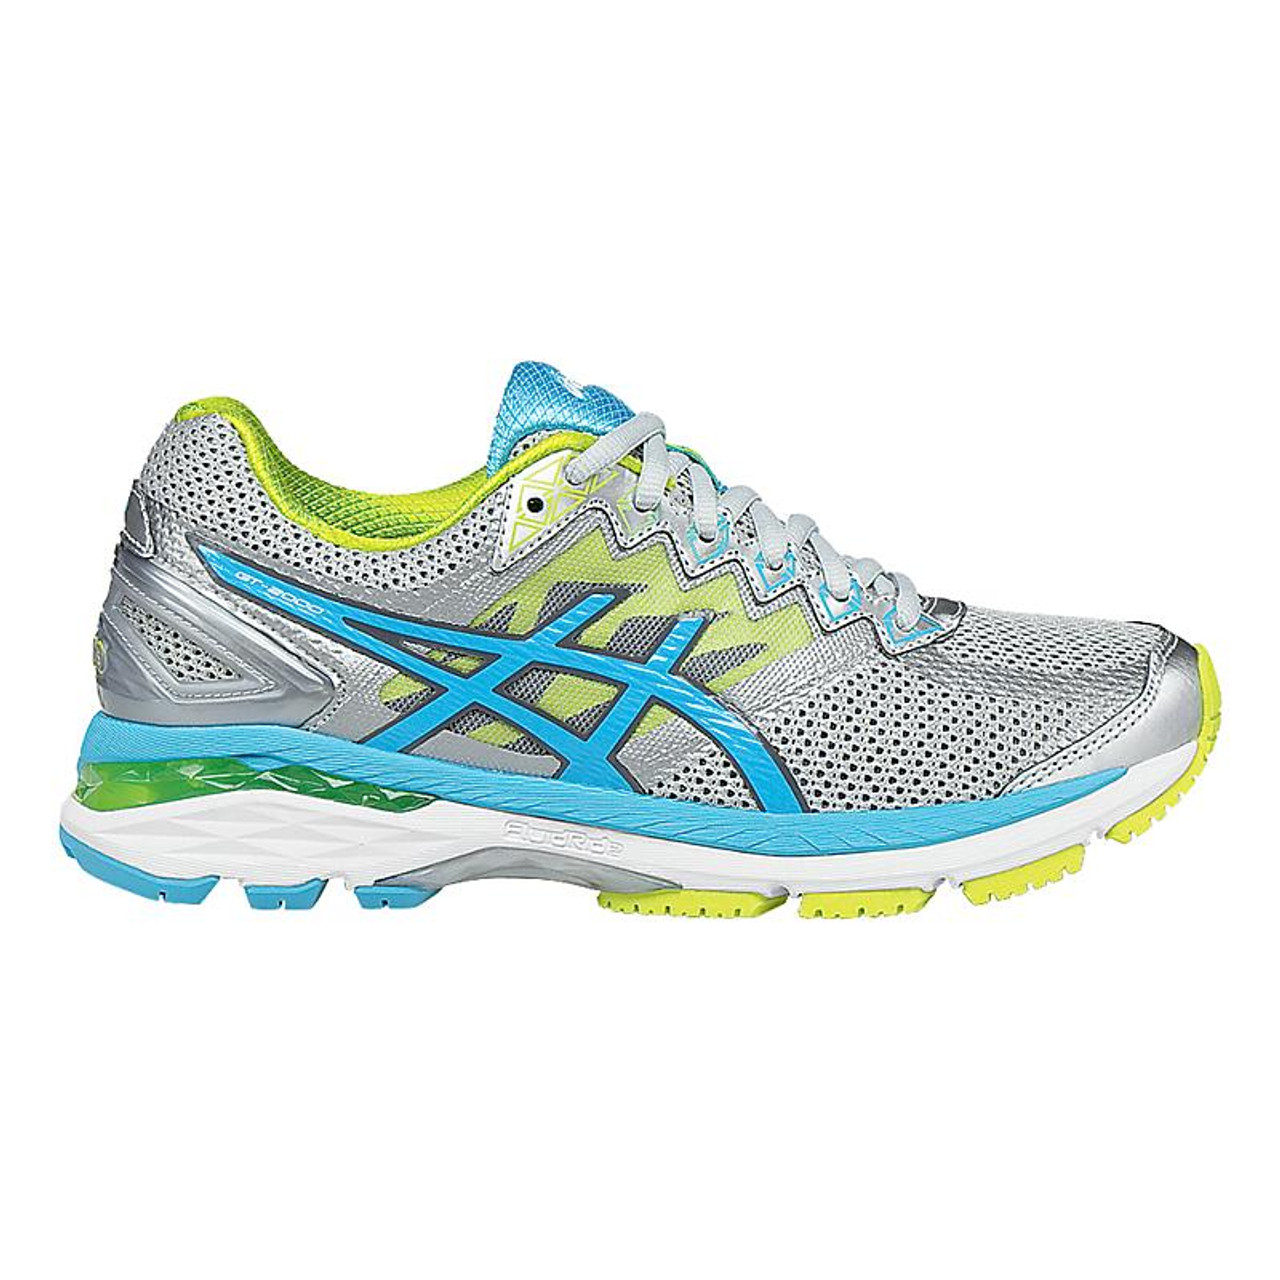 asics gt 2000 3 uk Sale,up to 55% Discounts